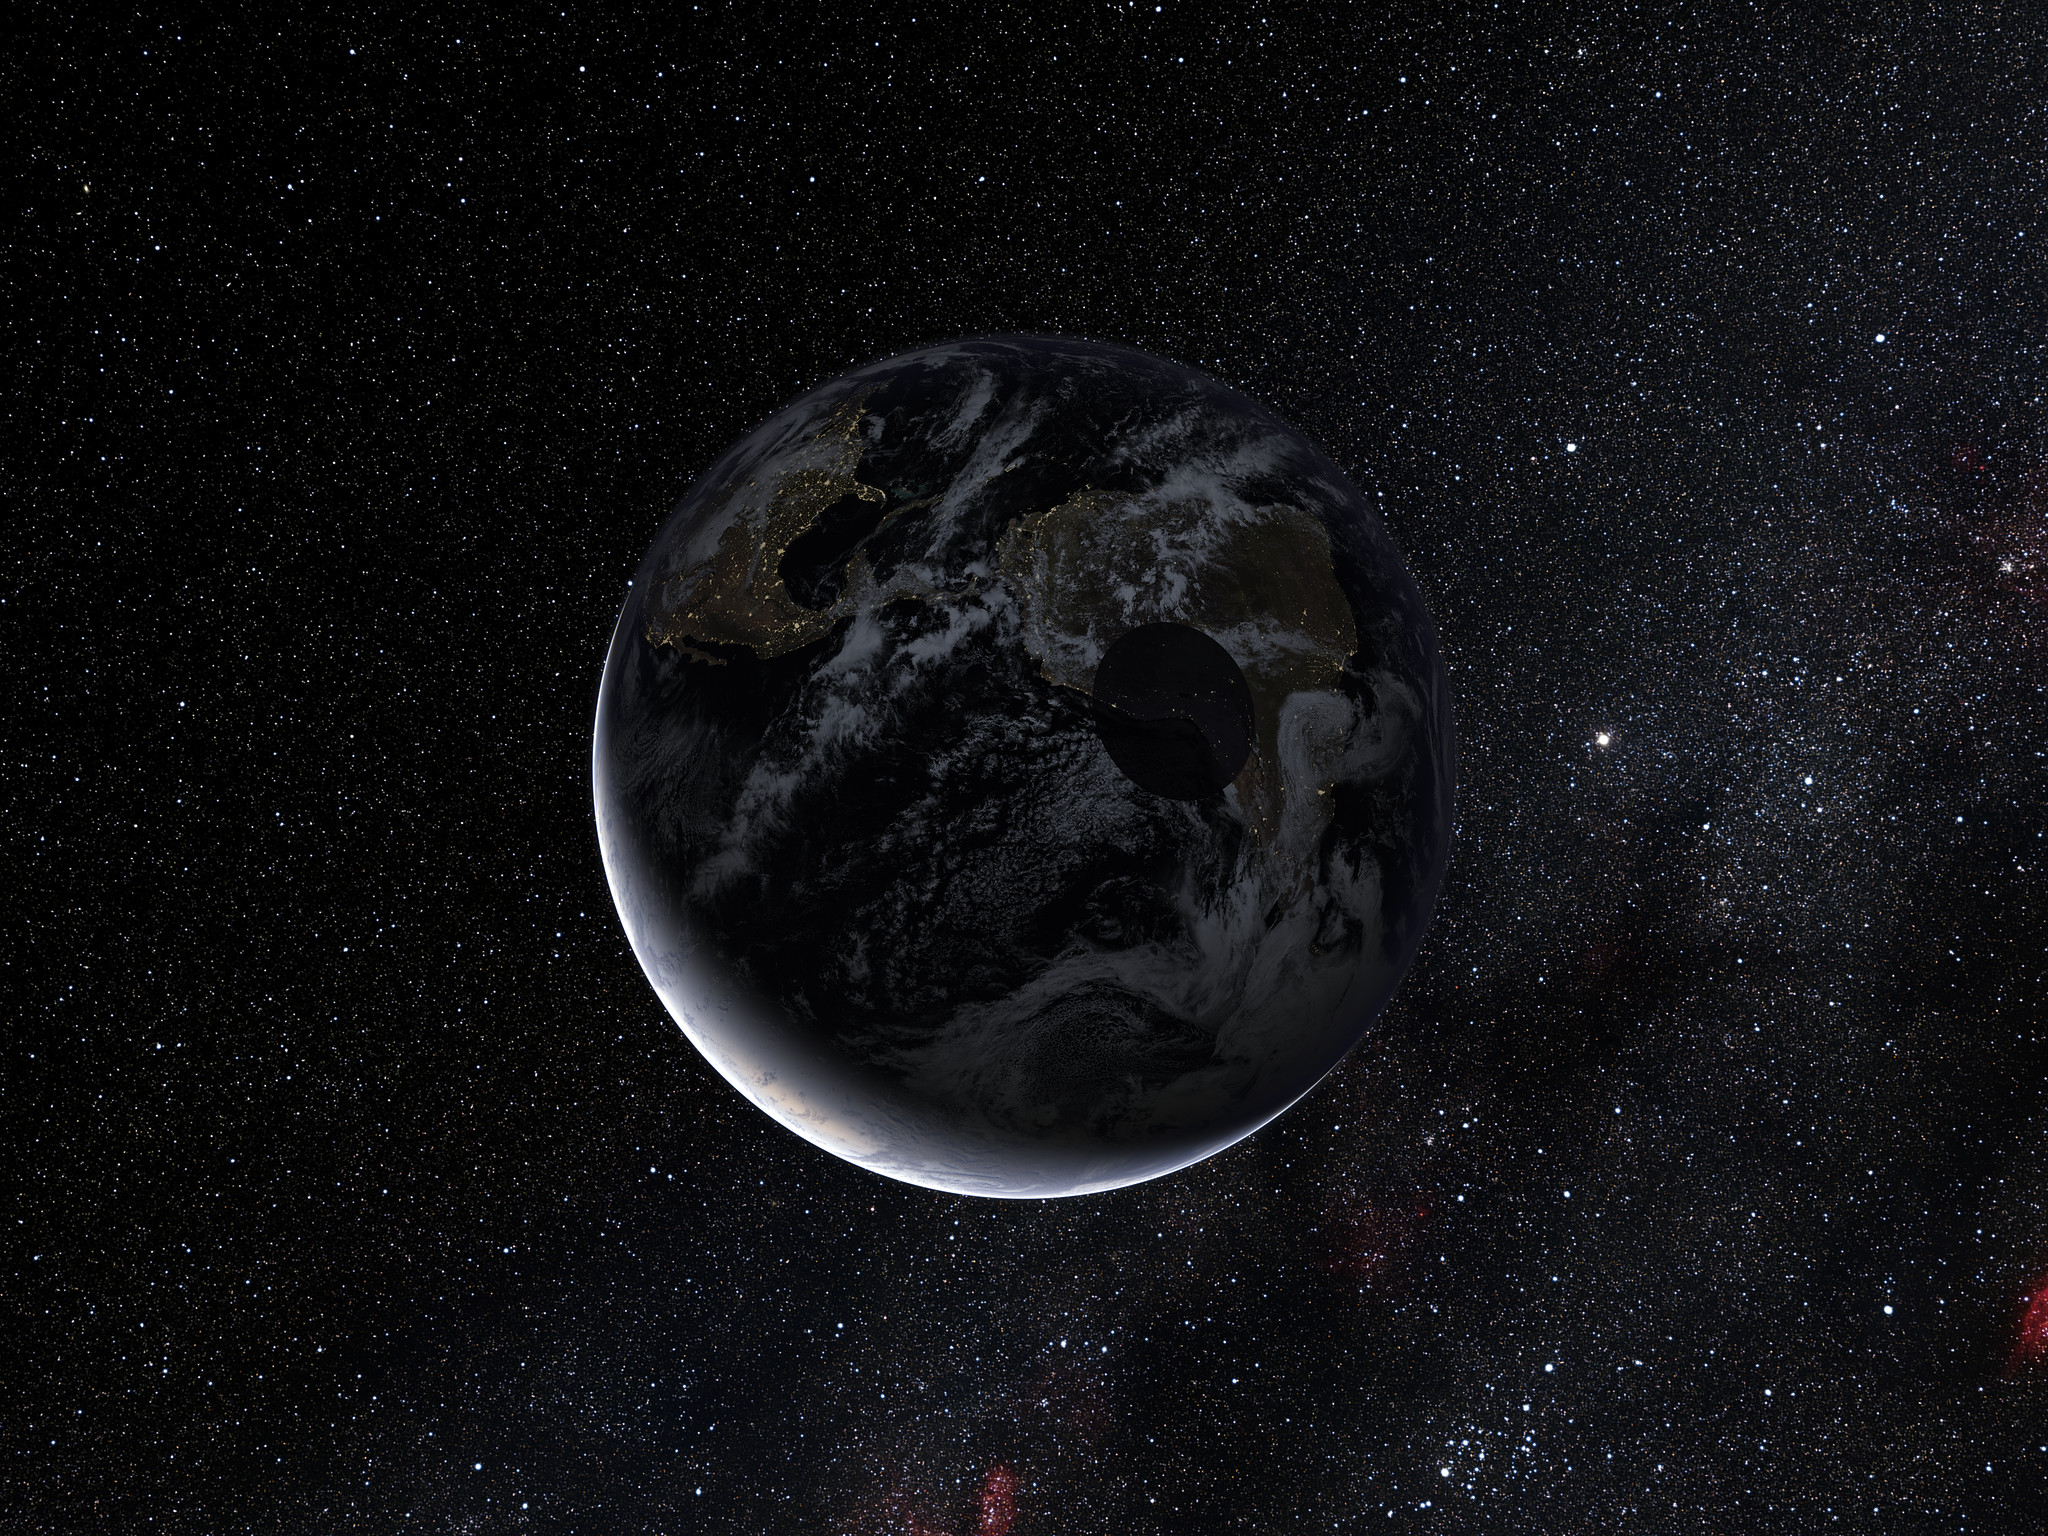 Path Of The Shadow Of The Dwarf Planet Eris During The